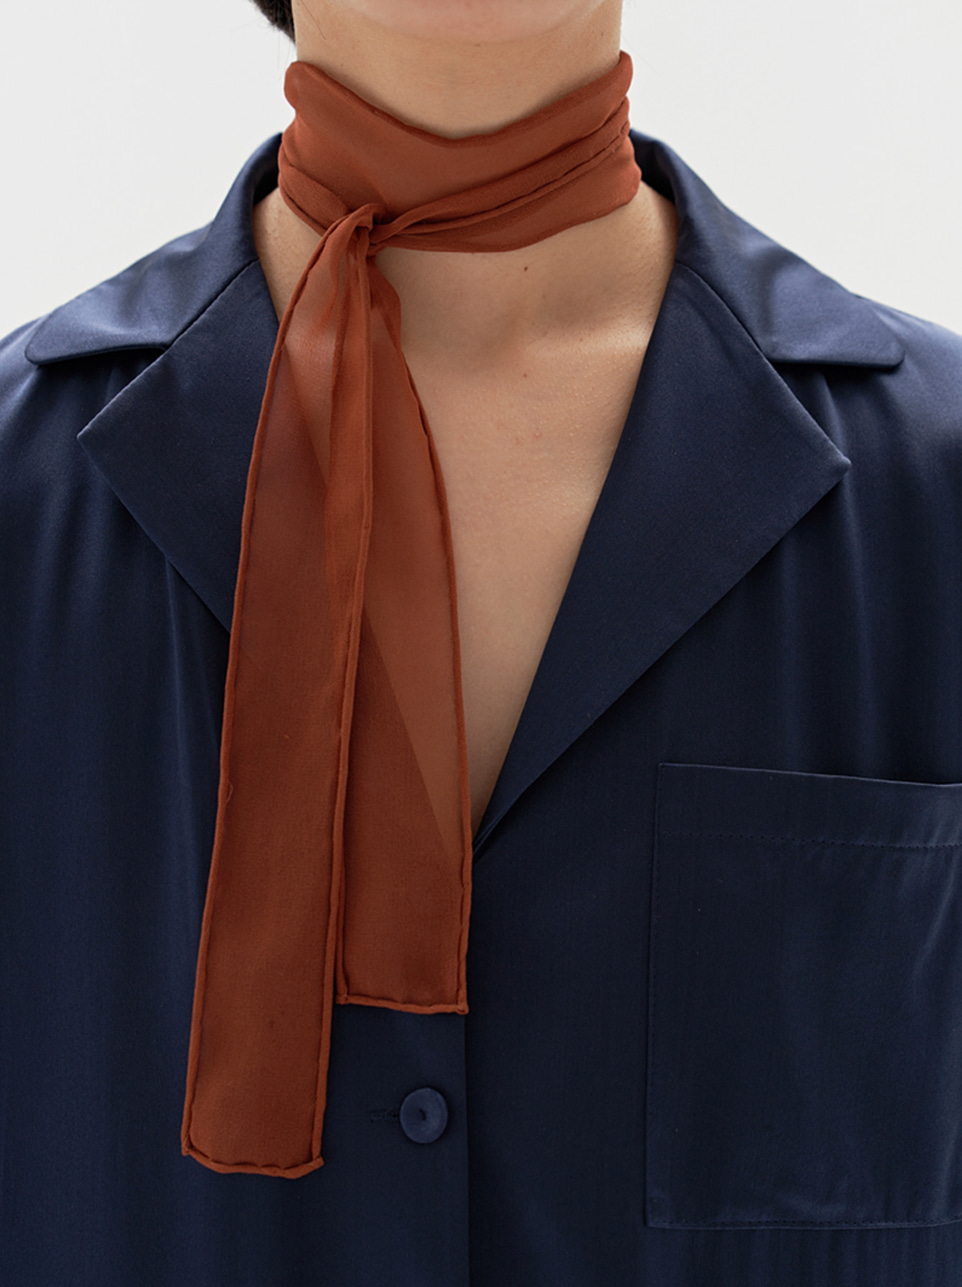 Silk Chiffon Scarf (petit) 6colors